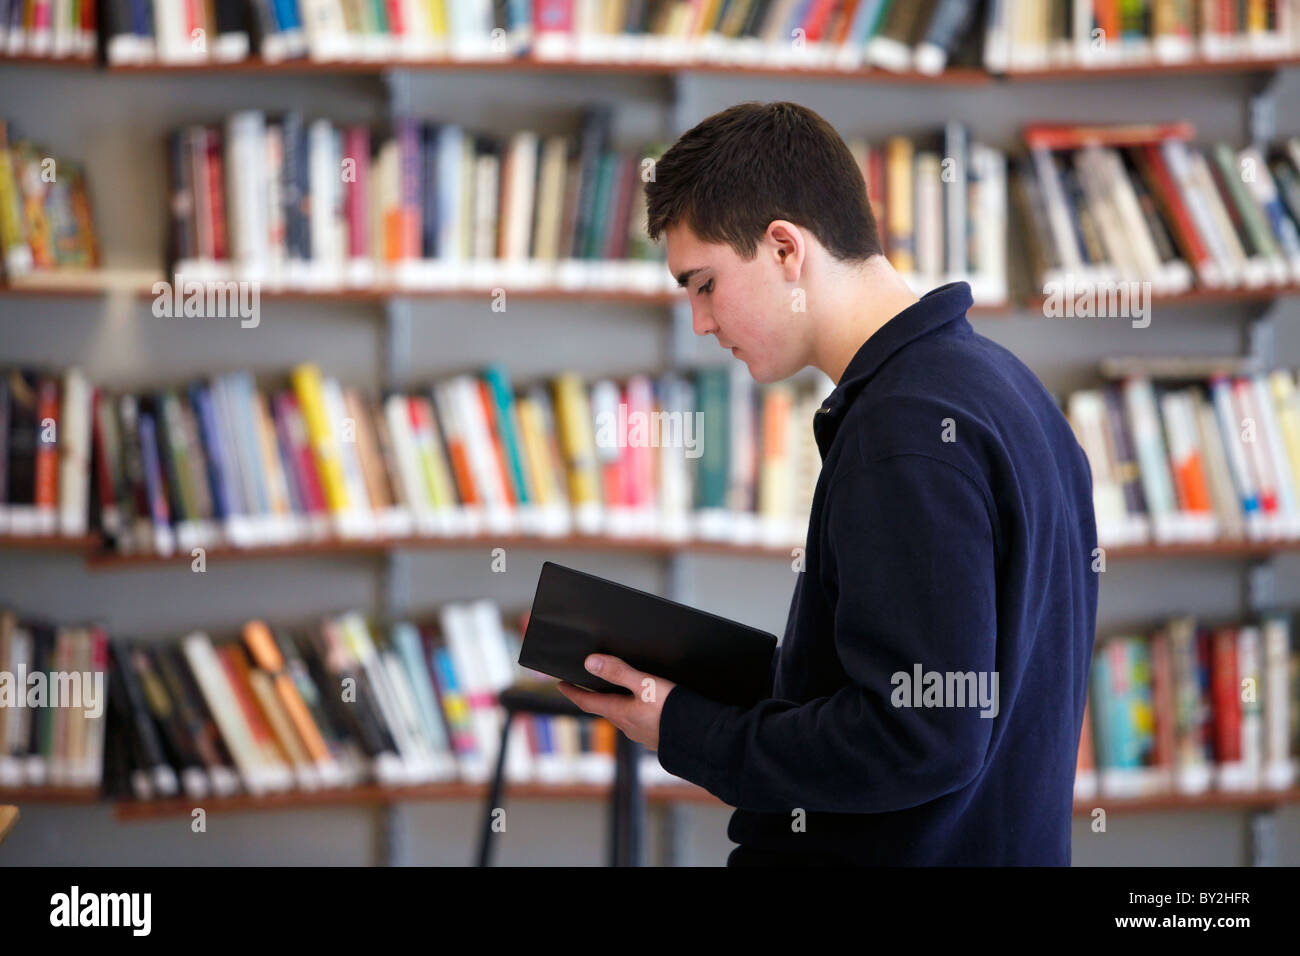 American high school student reading in front of bookshelves - Stock Image